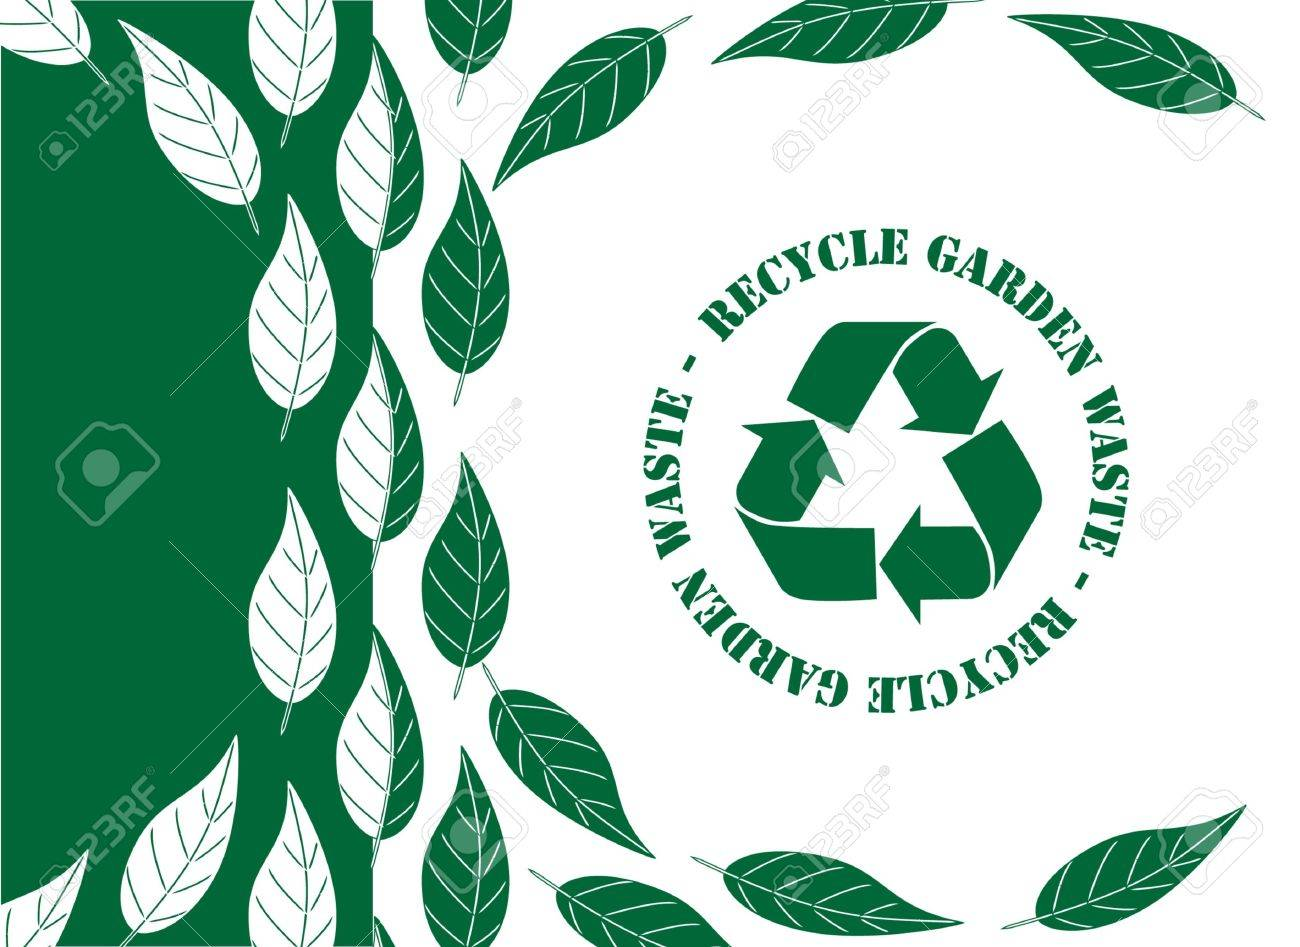 Recycle garden waste concerpt. Simple green and white leaf design with recycle symbol EPS10 vector format. Stock Vector - 10262890